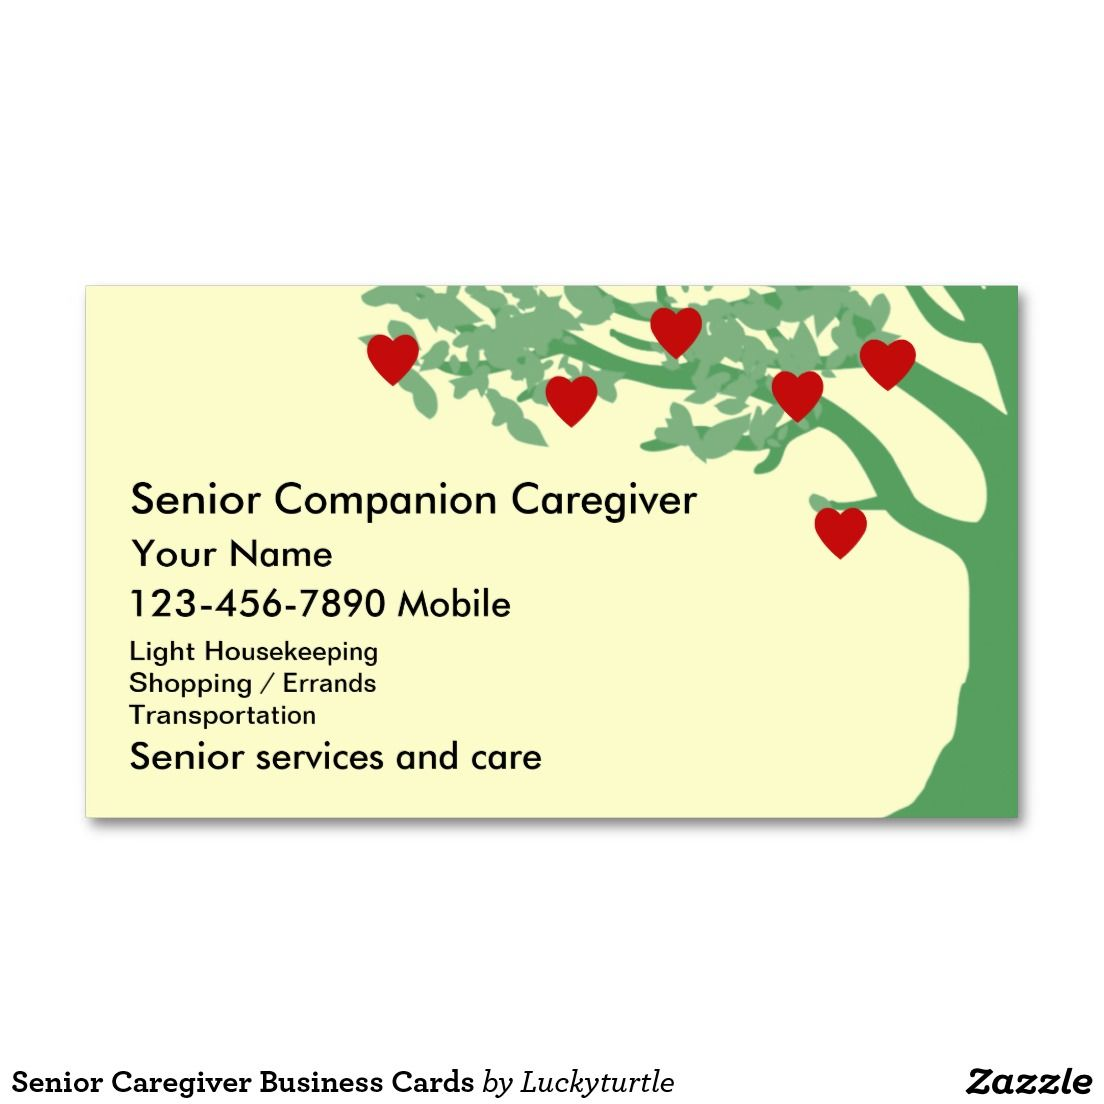 Senior Caregiver Business Cards | Medical Themed Business Cards ...